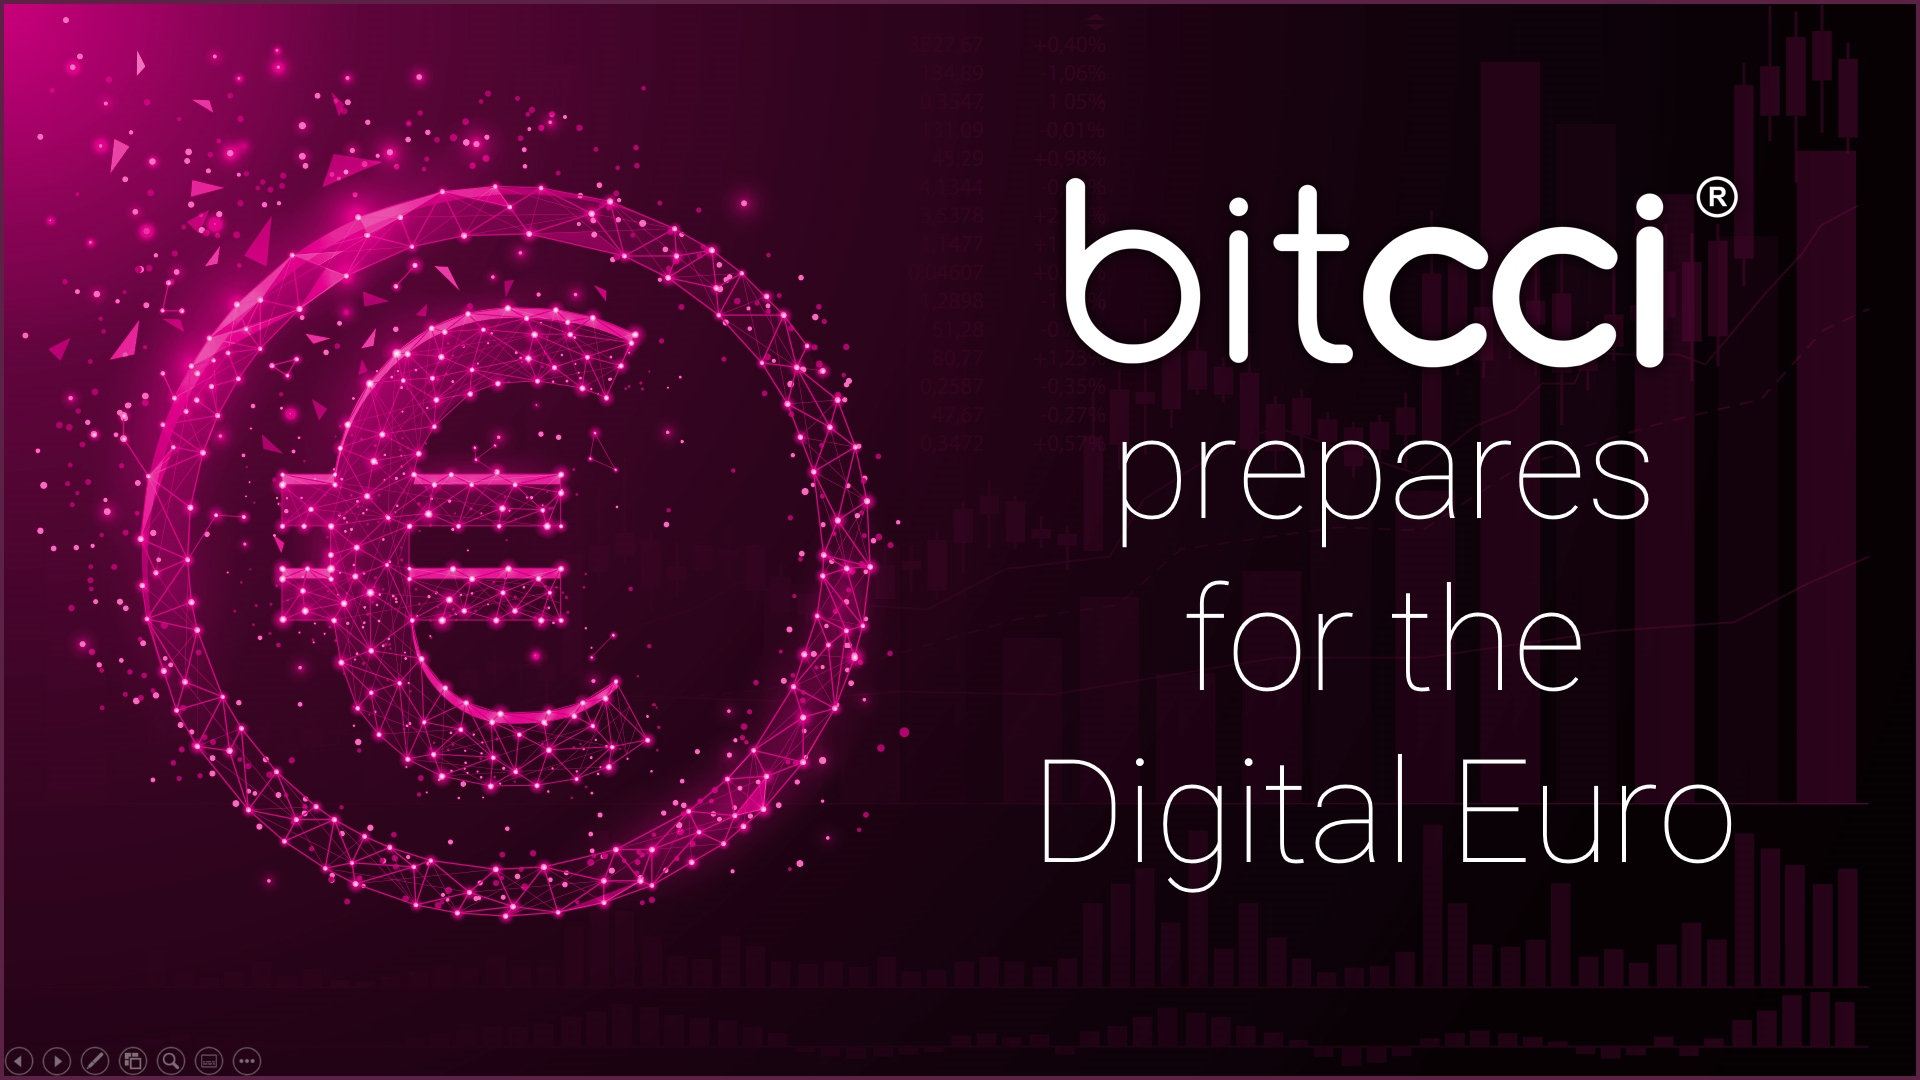 Great for bitcci ! A digital EURO for the digital era.